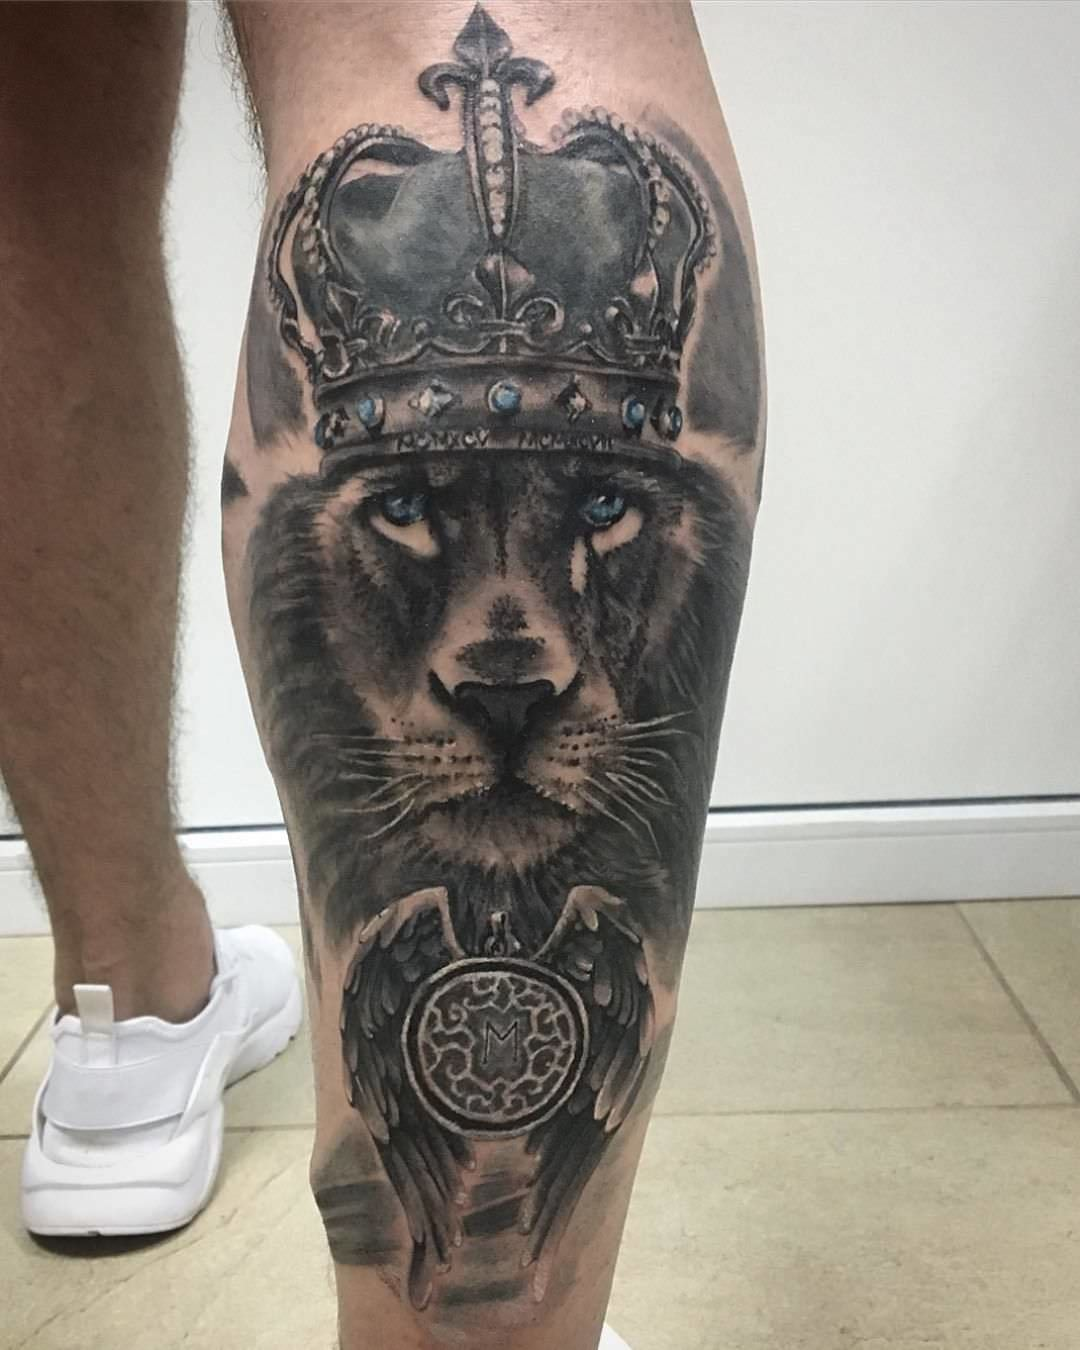 4f2762a4b It becoms a strong comment on what the spirit animal of the inked person  actually looks like. A crown does look good on a lion than any other animal.